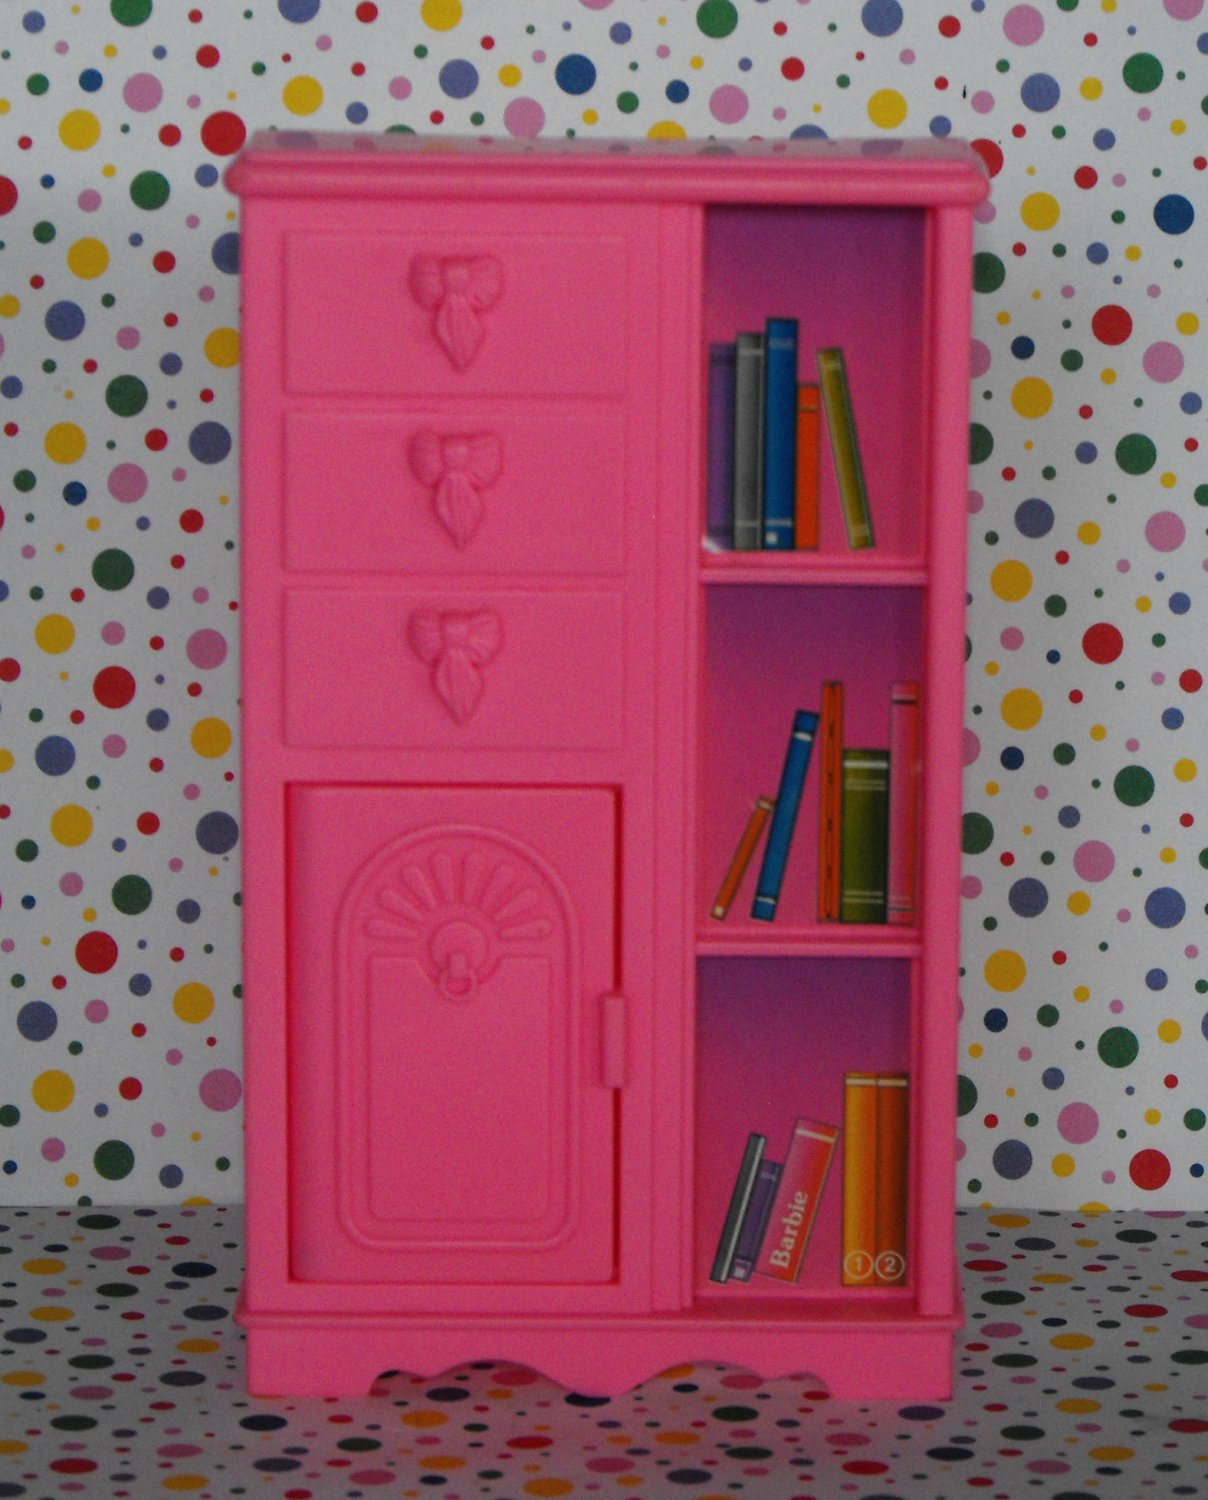 Barbie Pink Bookshelf Bookcase Dollhouse Furniture